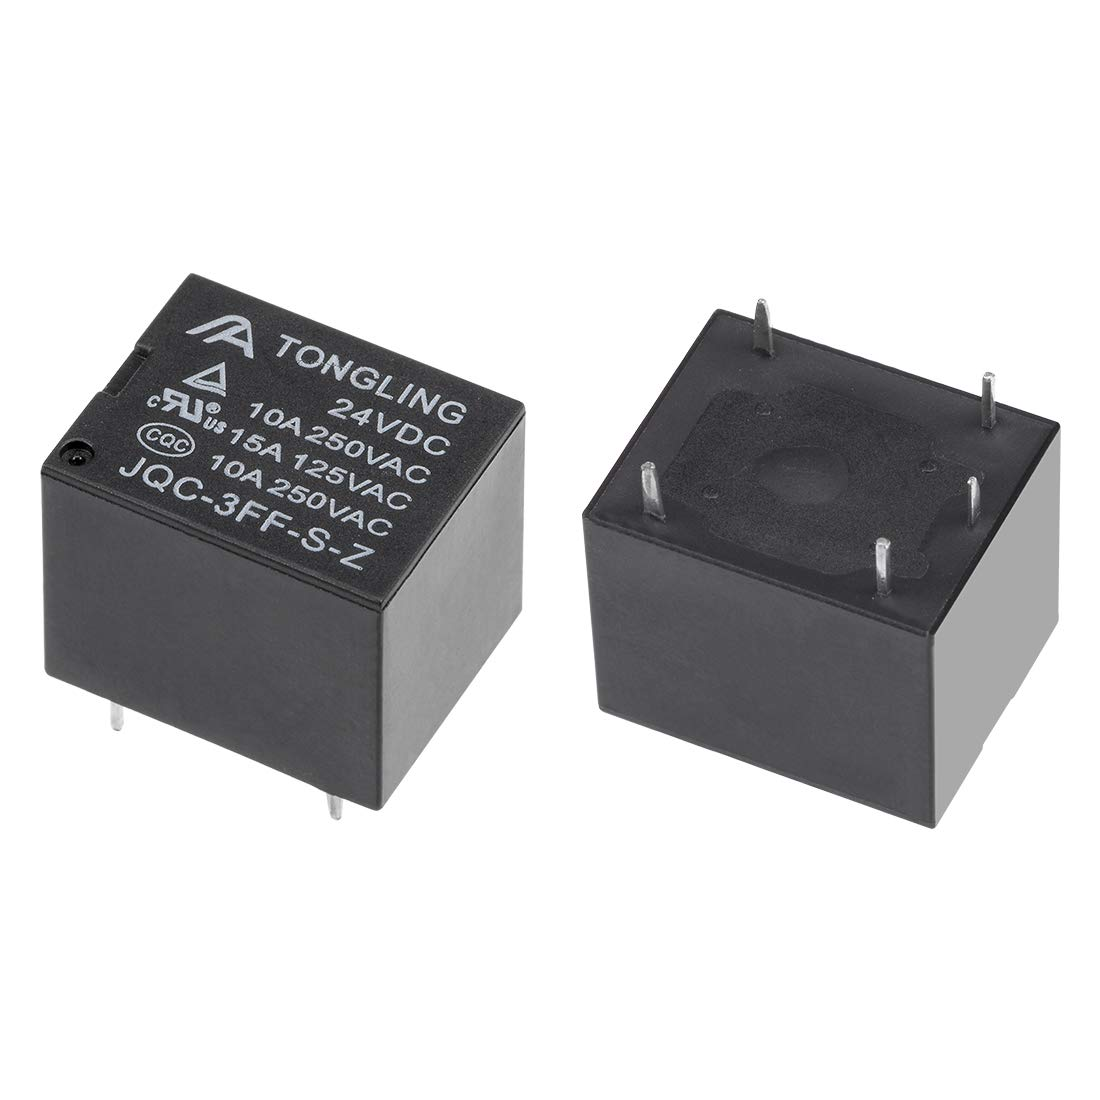 uxcell 10 Pcs JQC-3FF-S-H DC 5V Coil SPST 4 Pin PCB Electromagnetic Power Relay